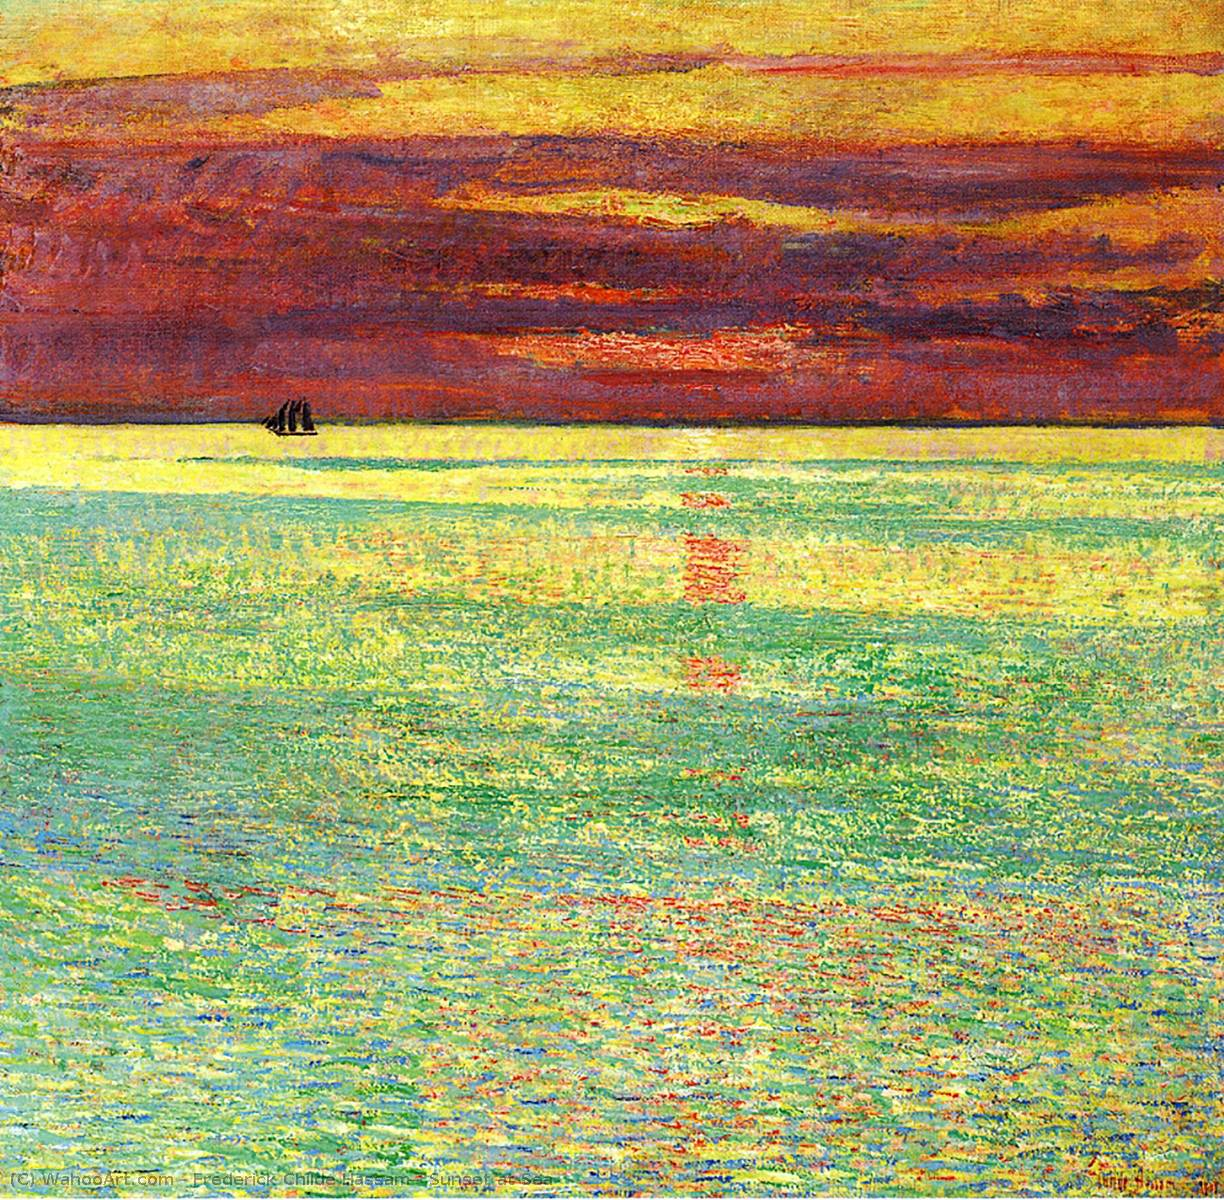 famous painting sonnenuntergang bei meer of Frederick Childe Hassam